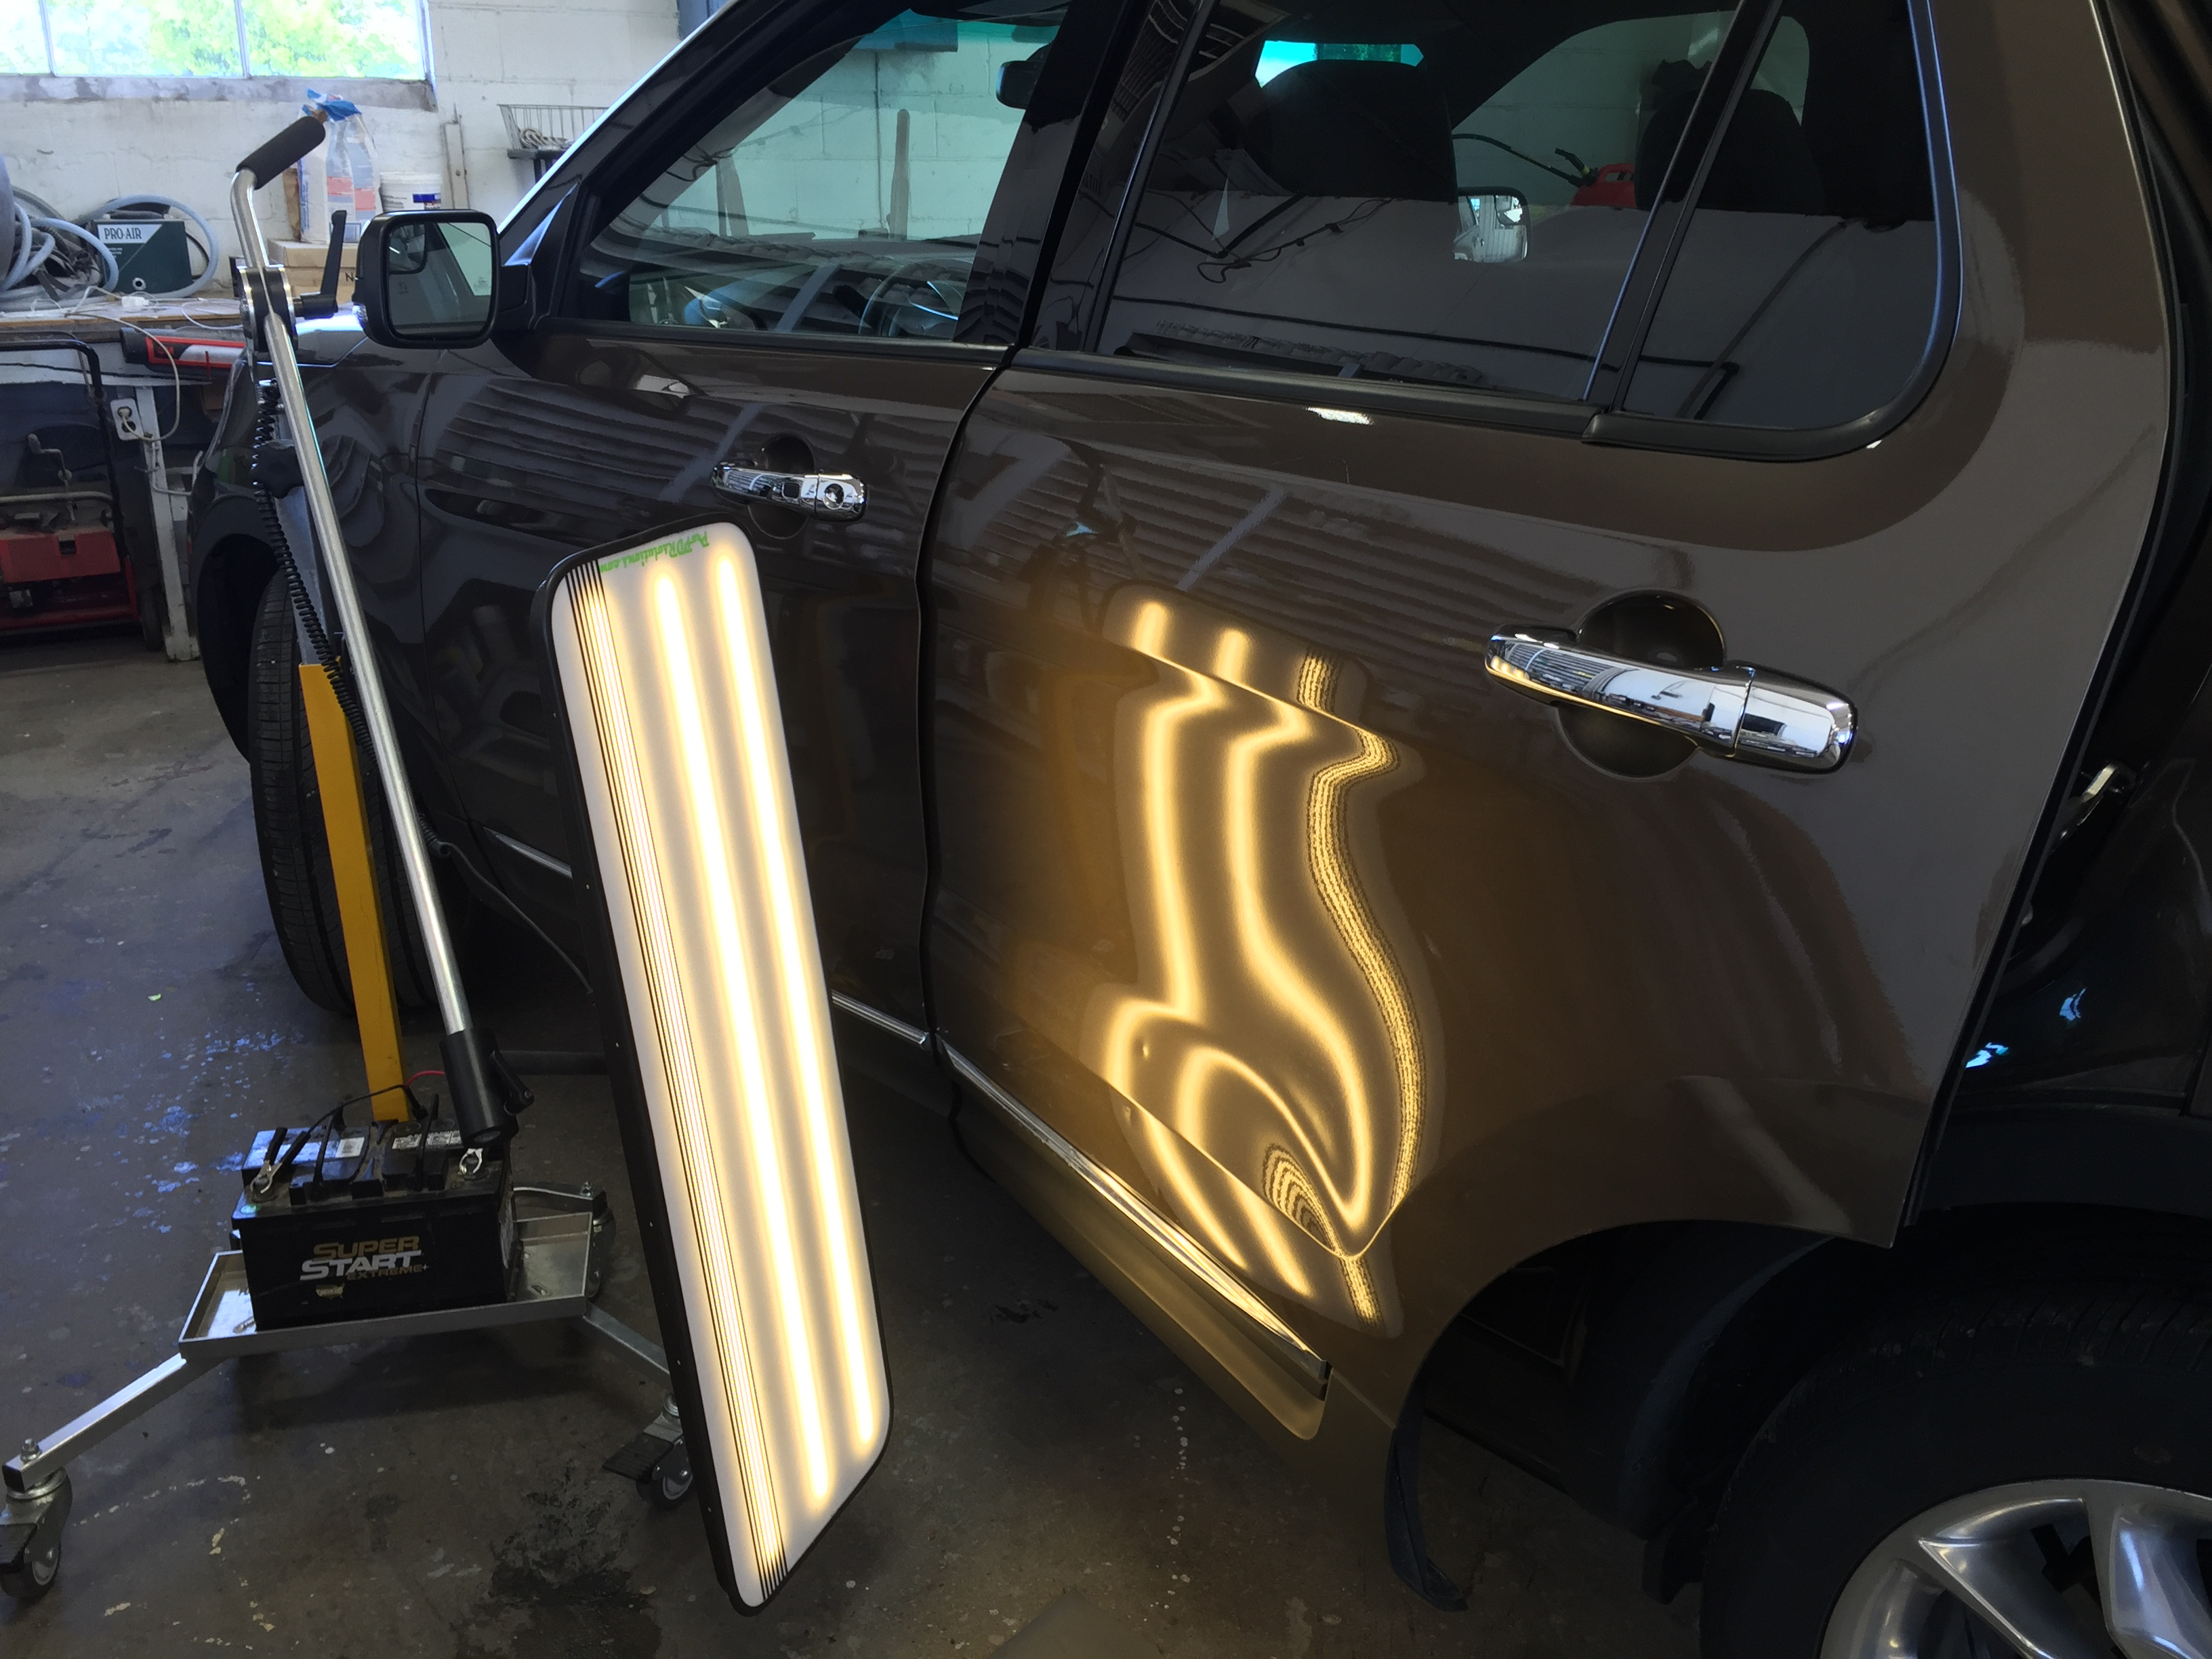 Mobile Dent Repair Springfield IL, 2015 Ford Explorer Drivers Side Rear Door, Dent Removal http://217dent.com